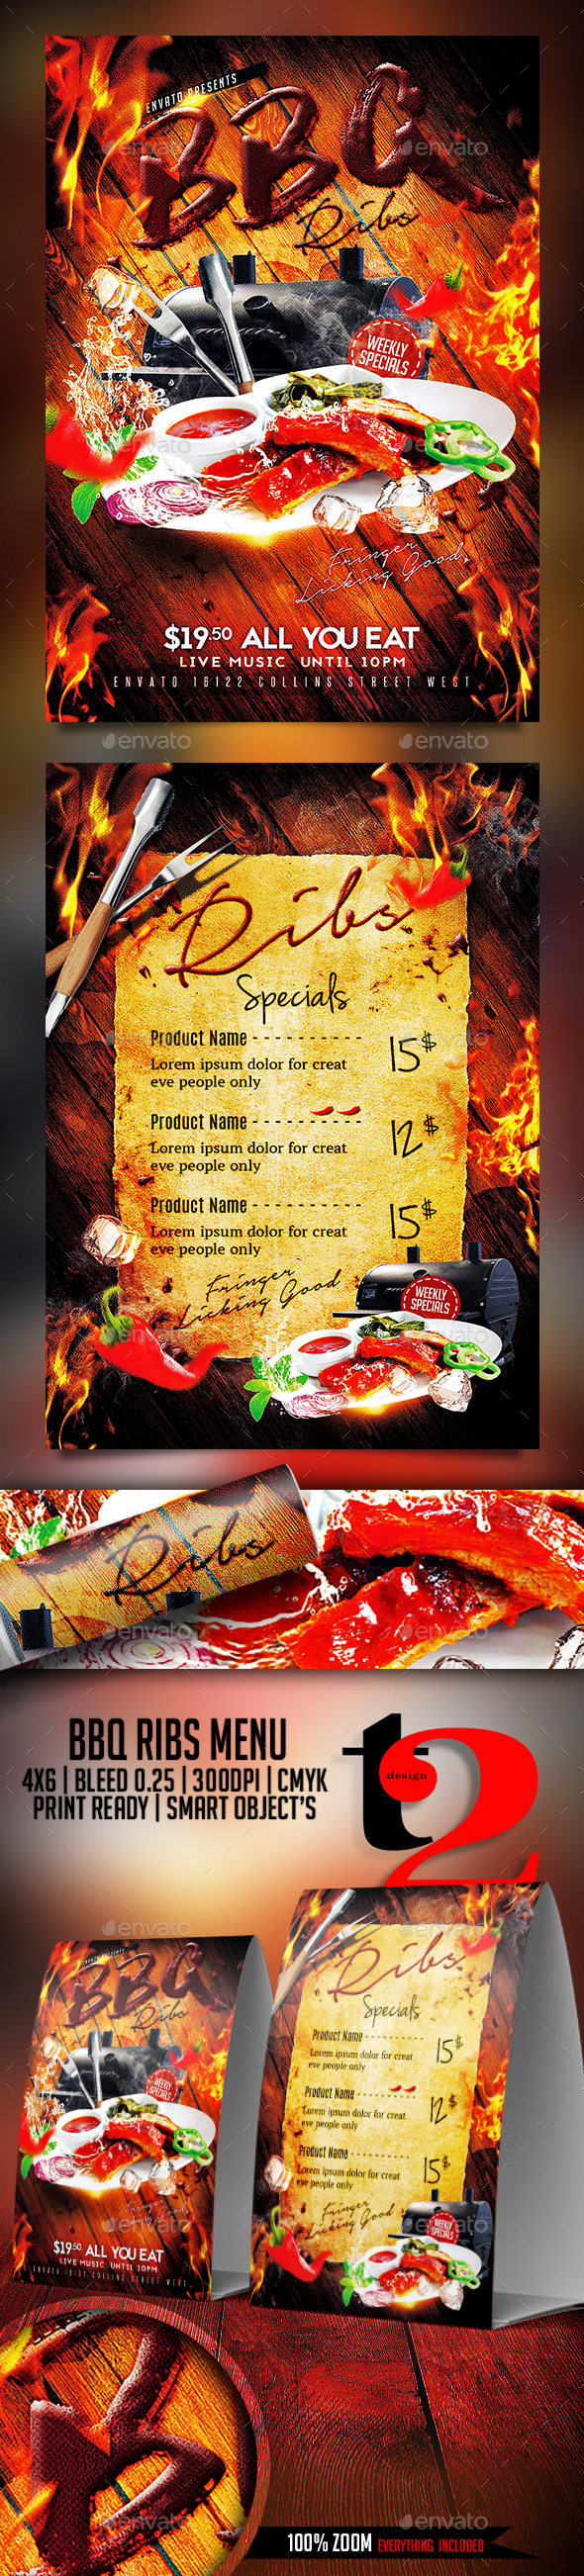 BBQ Ribs Menu Template - Restaurant Flyers